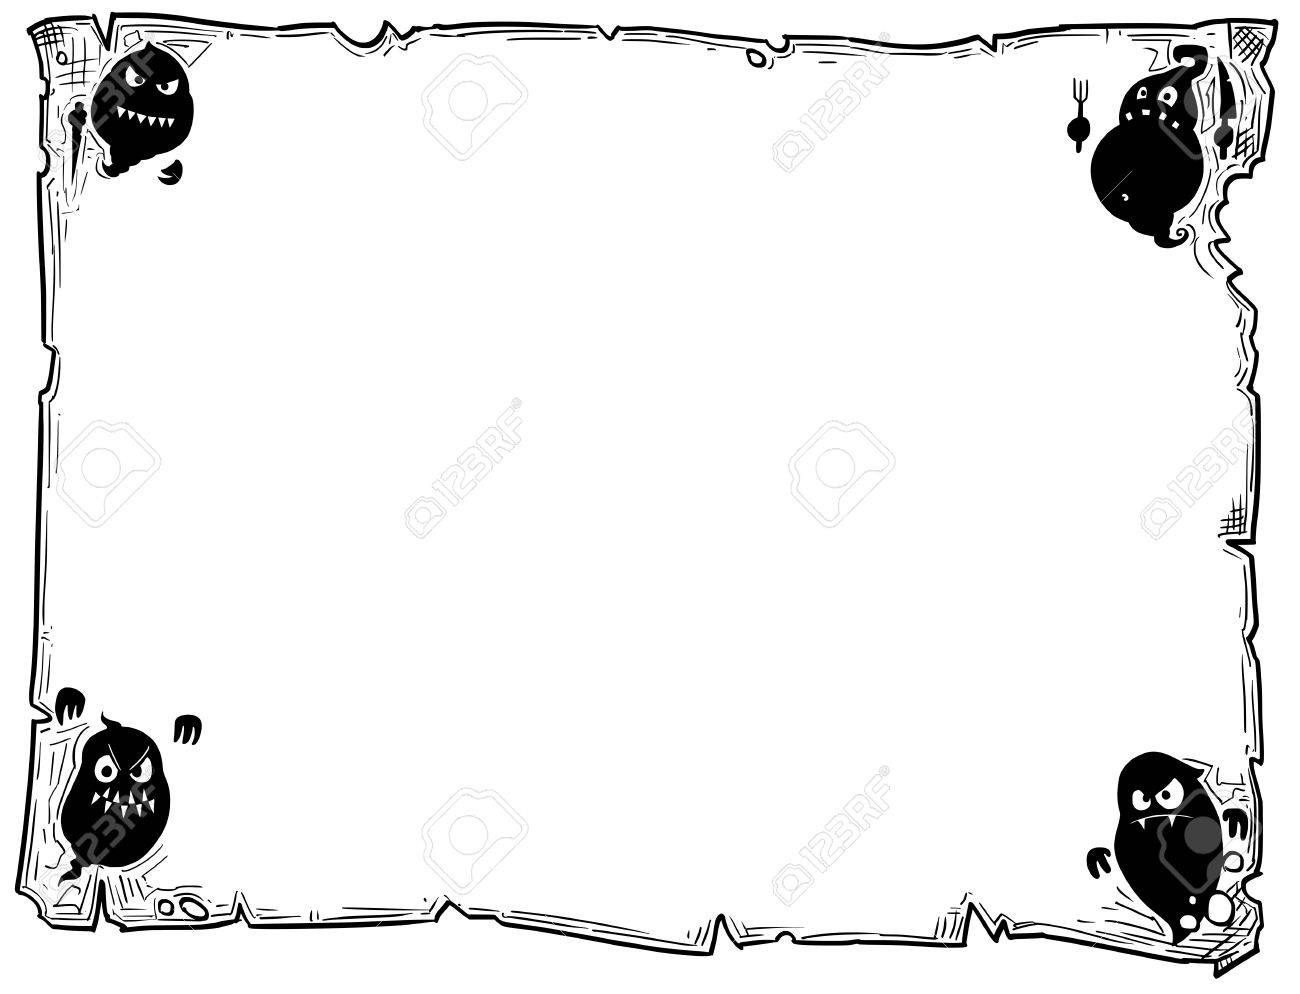 hand drawing cartoon halloween frame scroll sheet of parchment with ghost silhouettes illustrations stock vector - Halloween Sheet